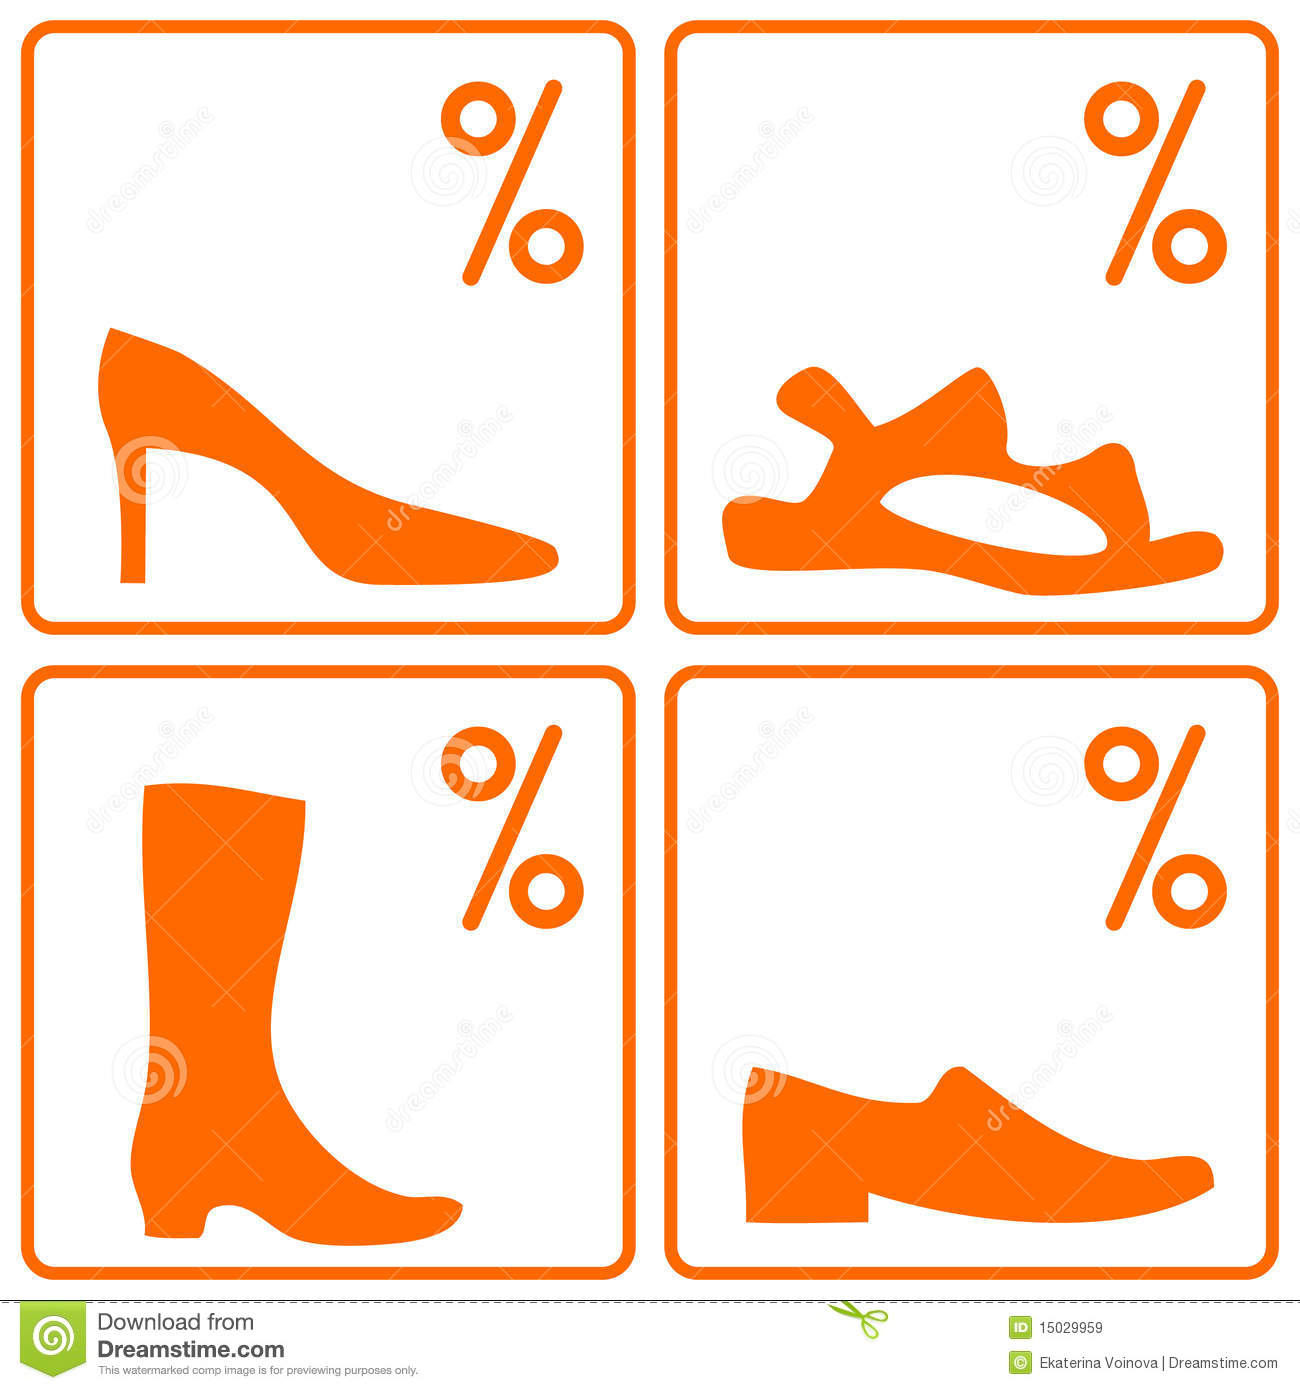 Royalty Free Stock Images: Shoes sale